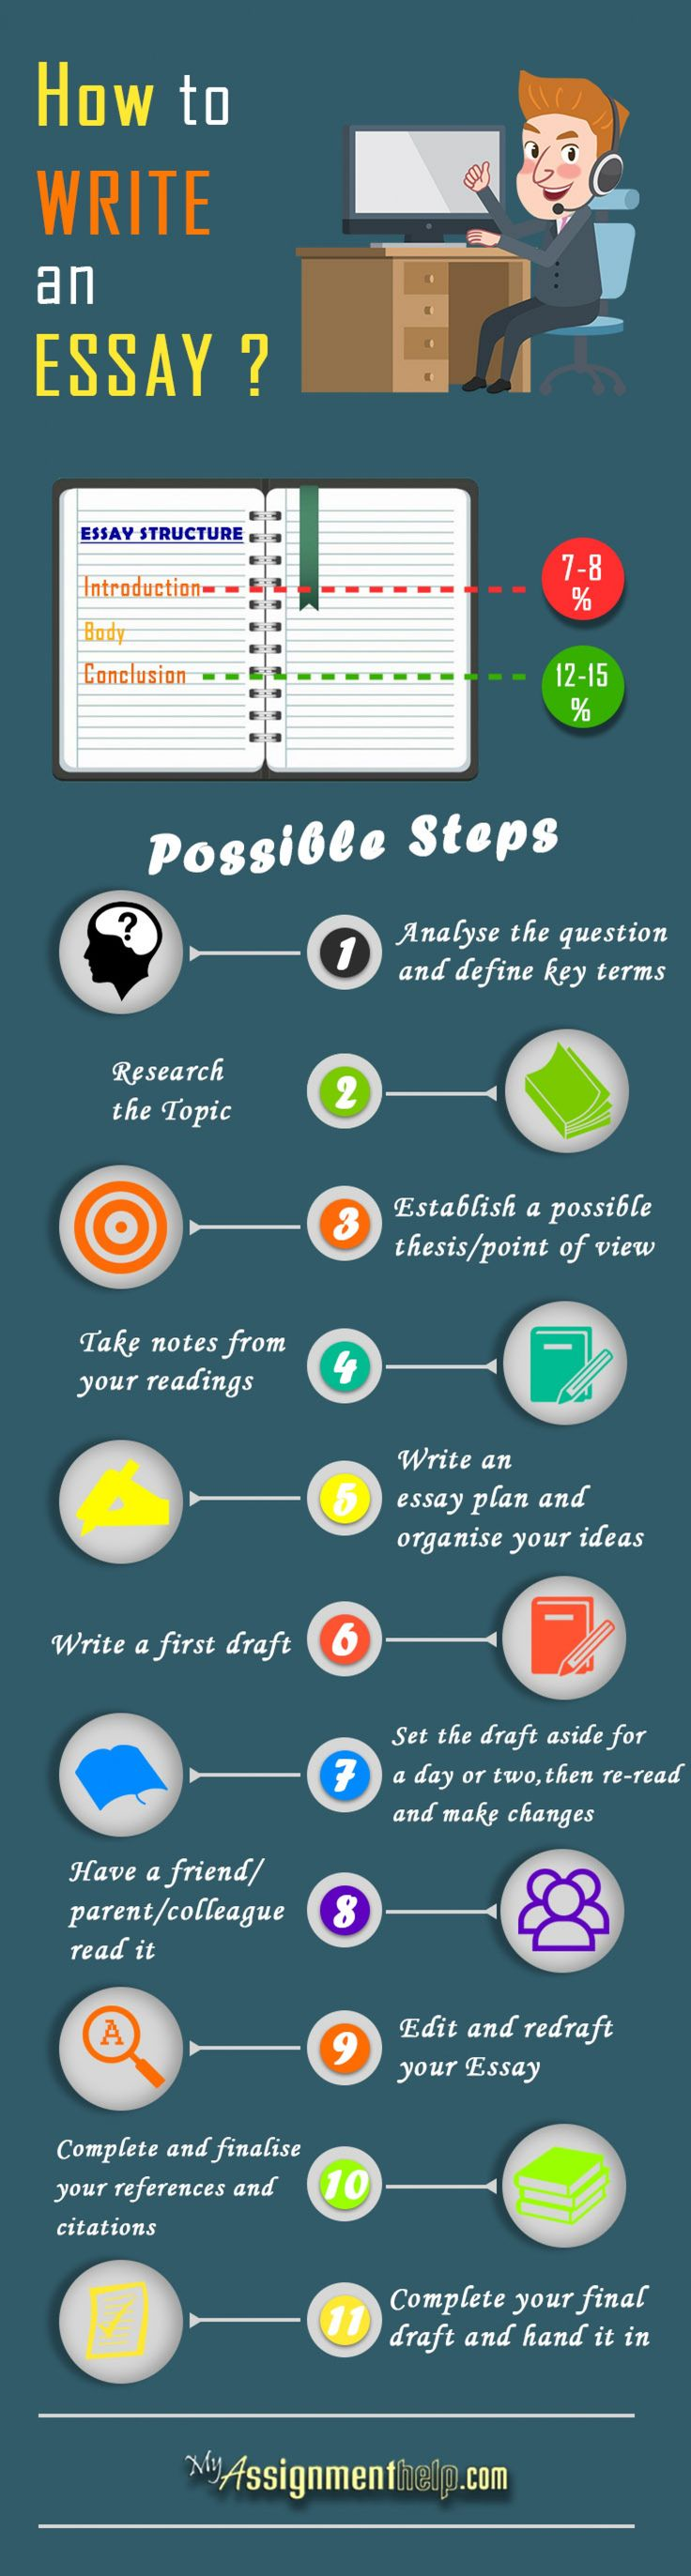 17 best images about essay help expository essay get to know basic essay writing tips online this infographic explains 11 key points to be considered while writing an essay for any essay help online